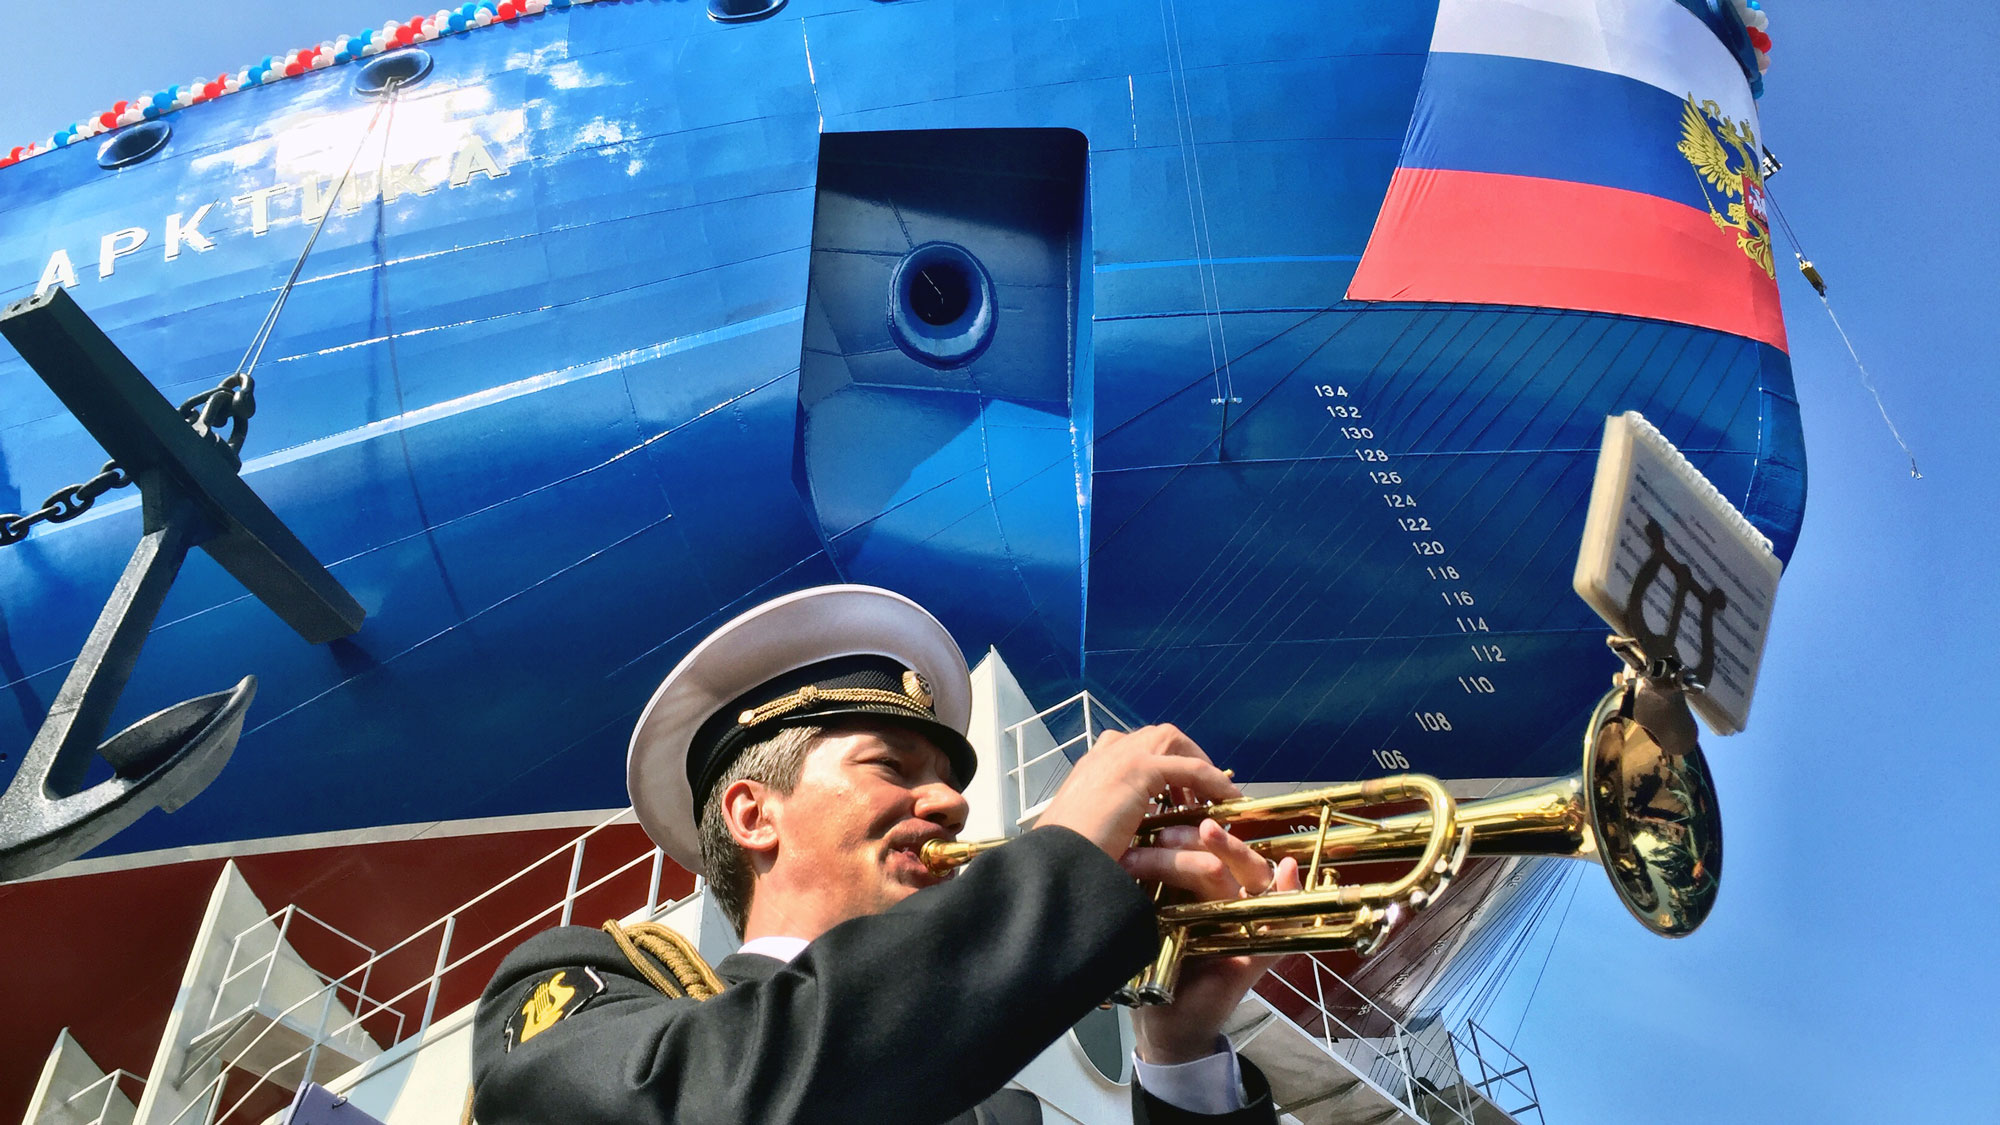 A man in a military uniform plays the trumpet. Behind him is the blue hull of the icebreaker ship Arktika.